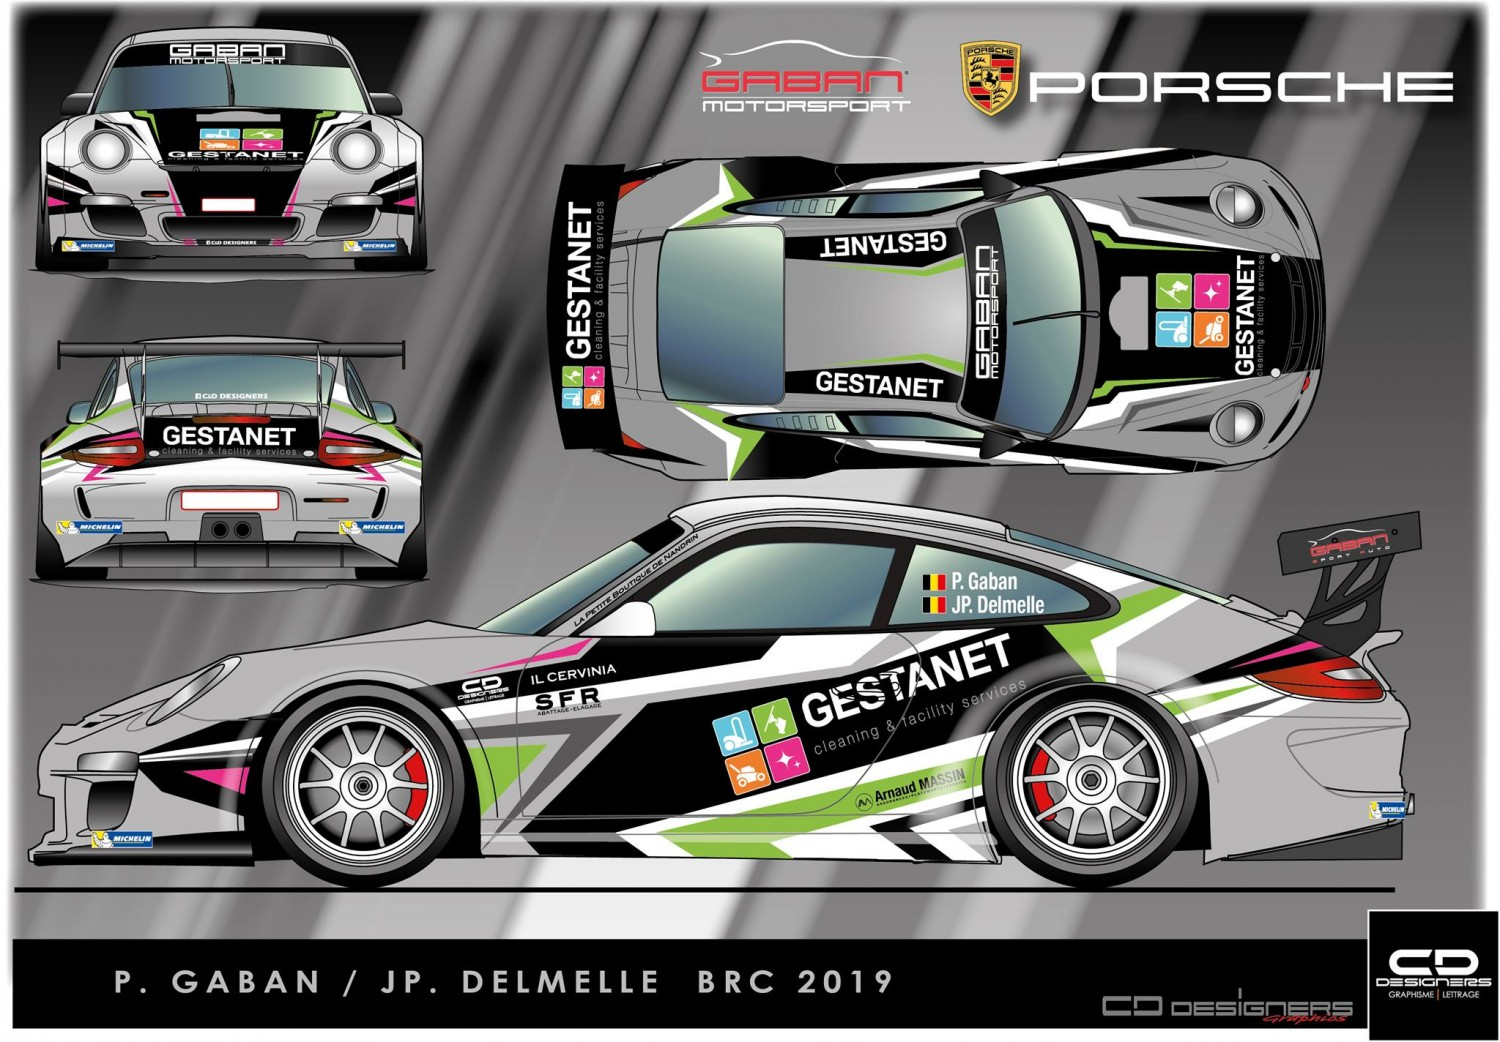 2019 - Come-back Pascal Gaban in Porsche GT3